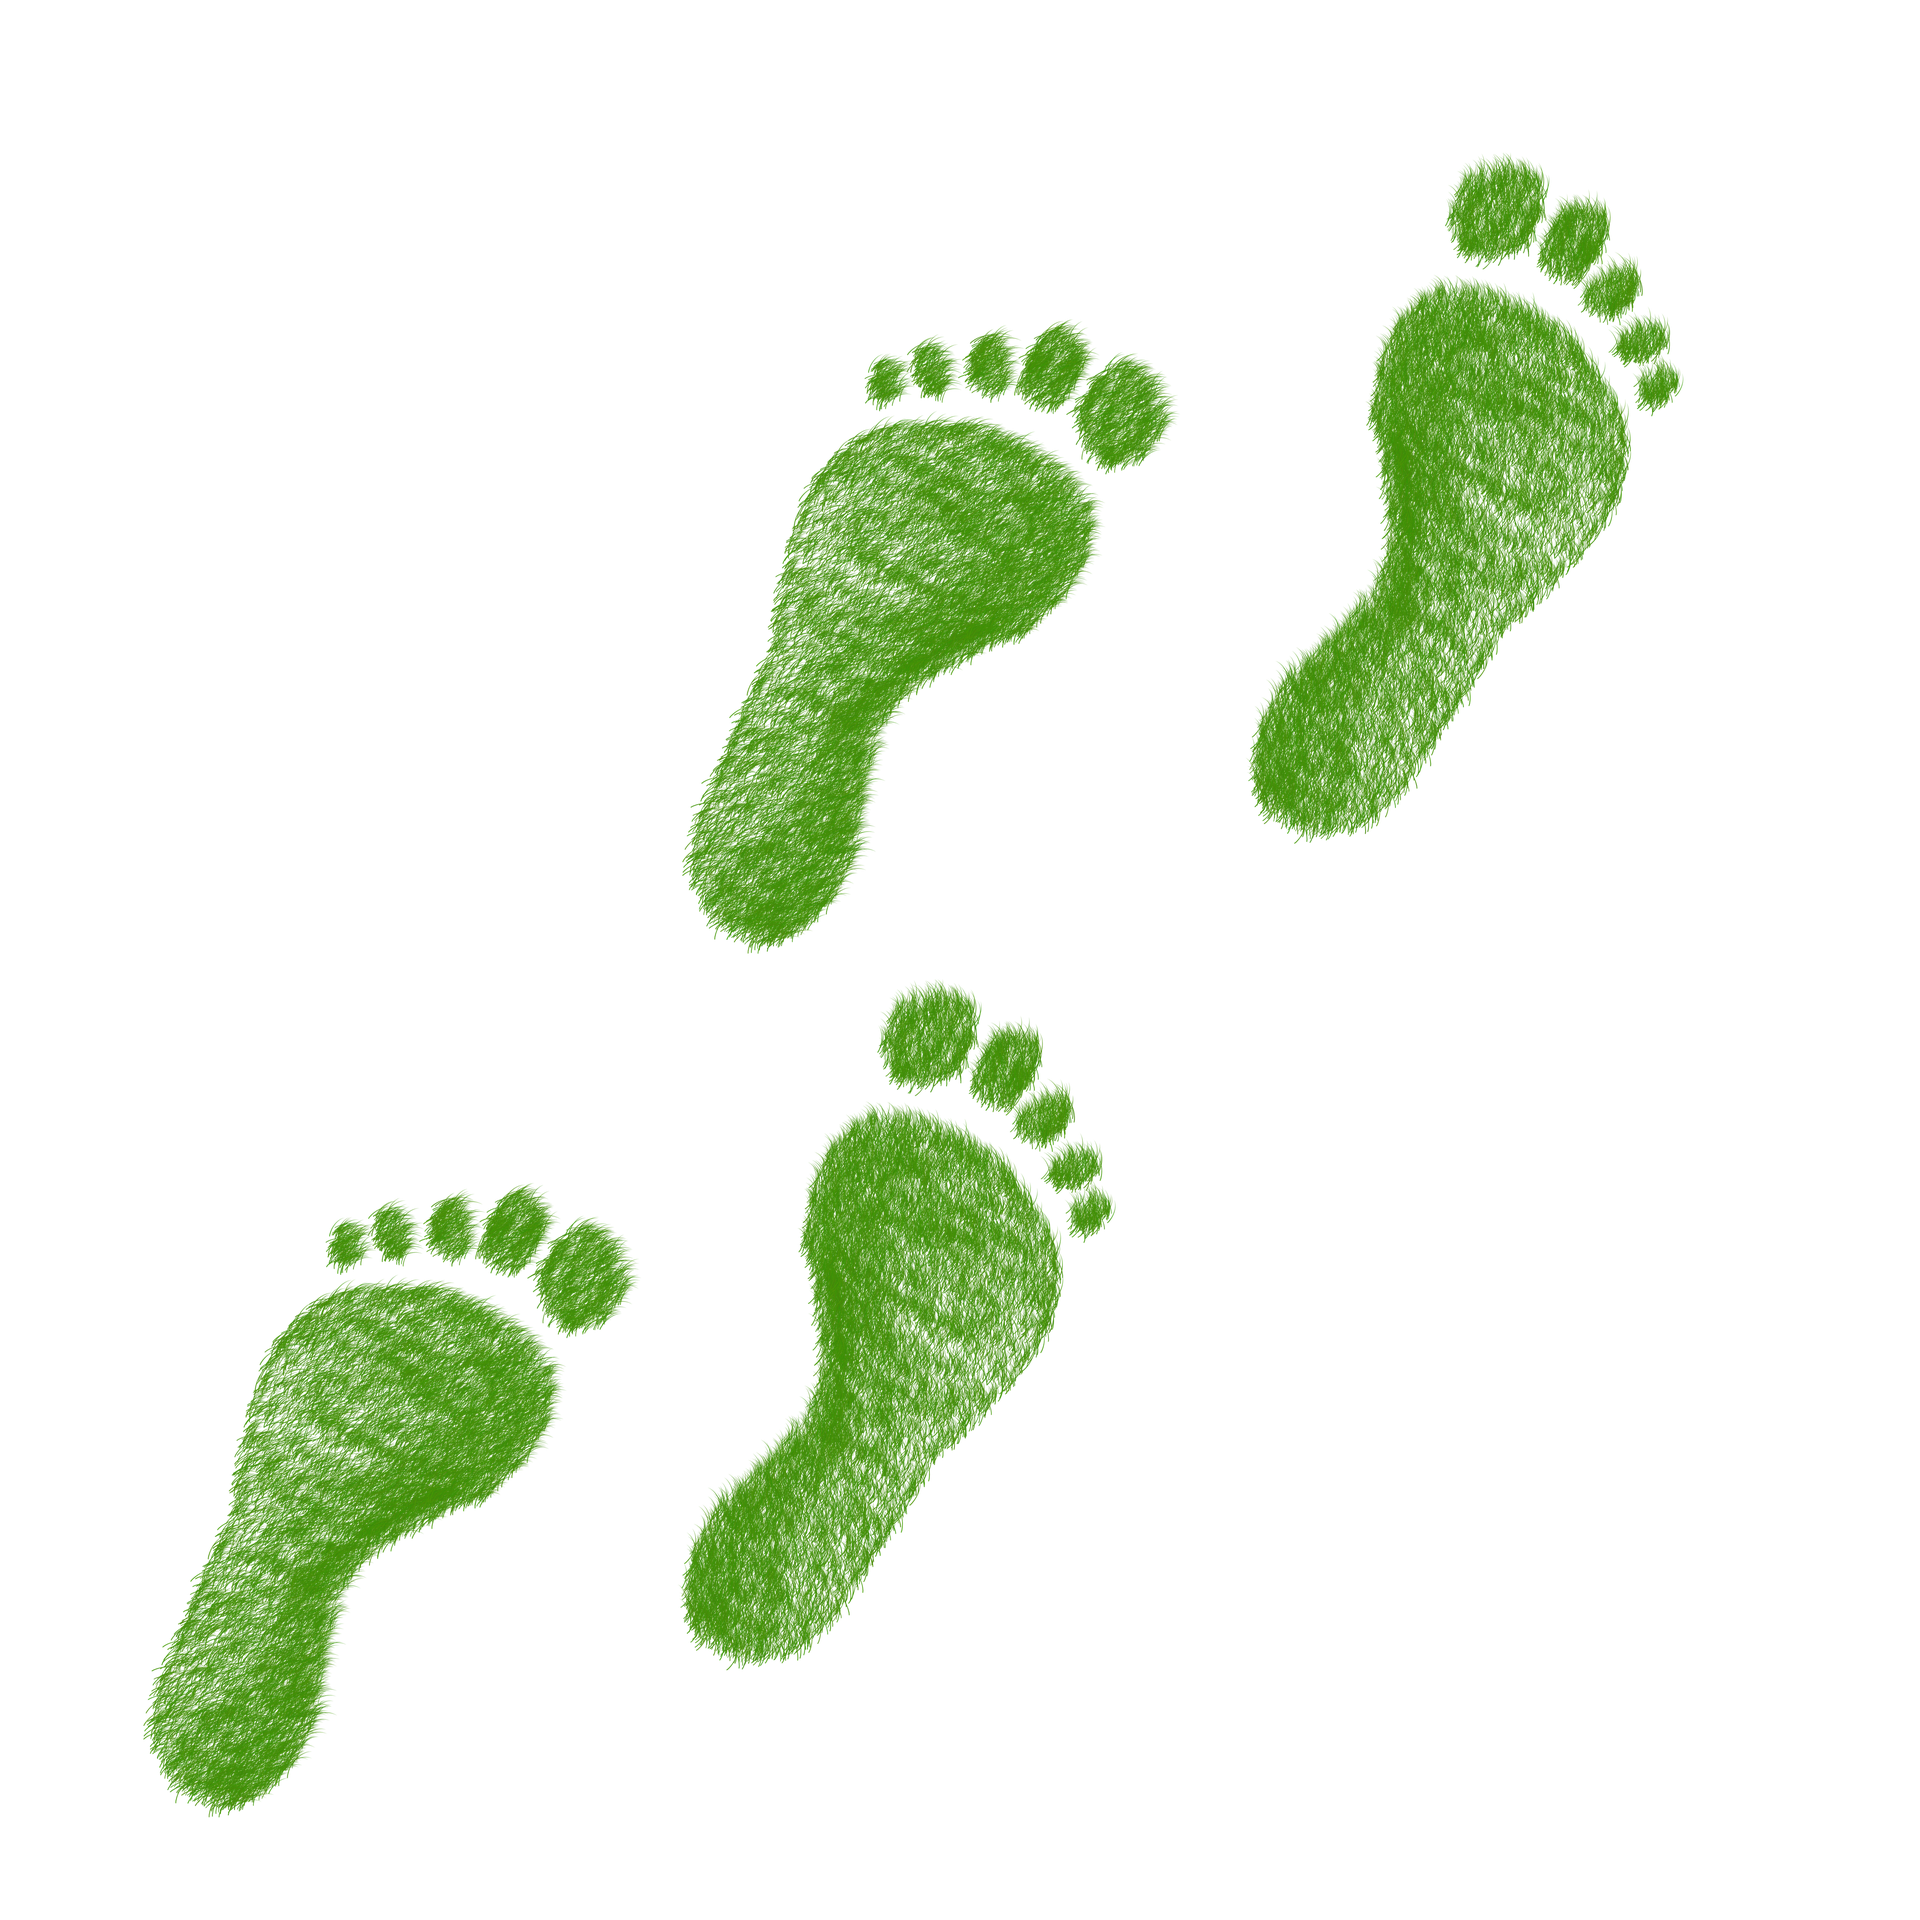 green-1968590_1920.png